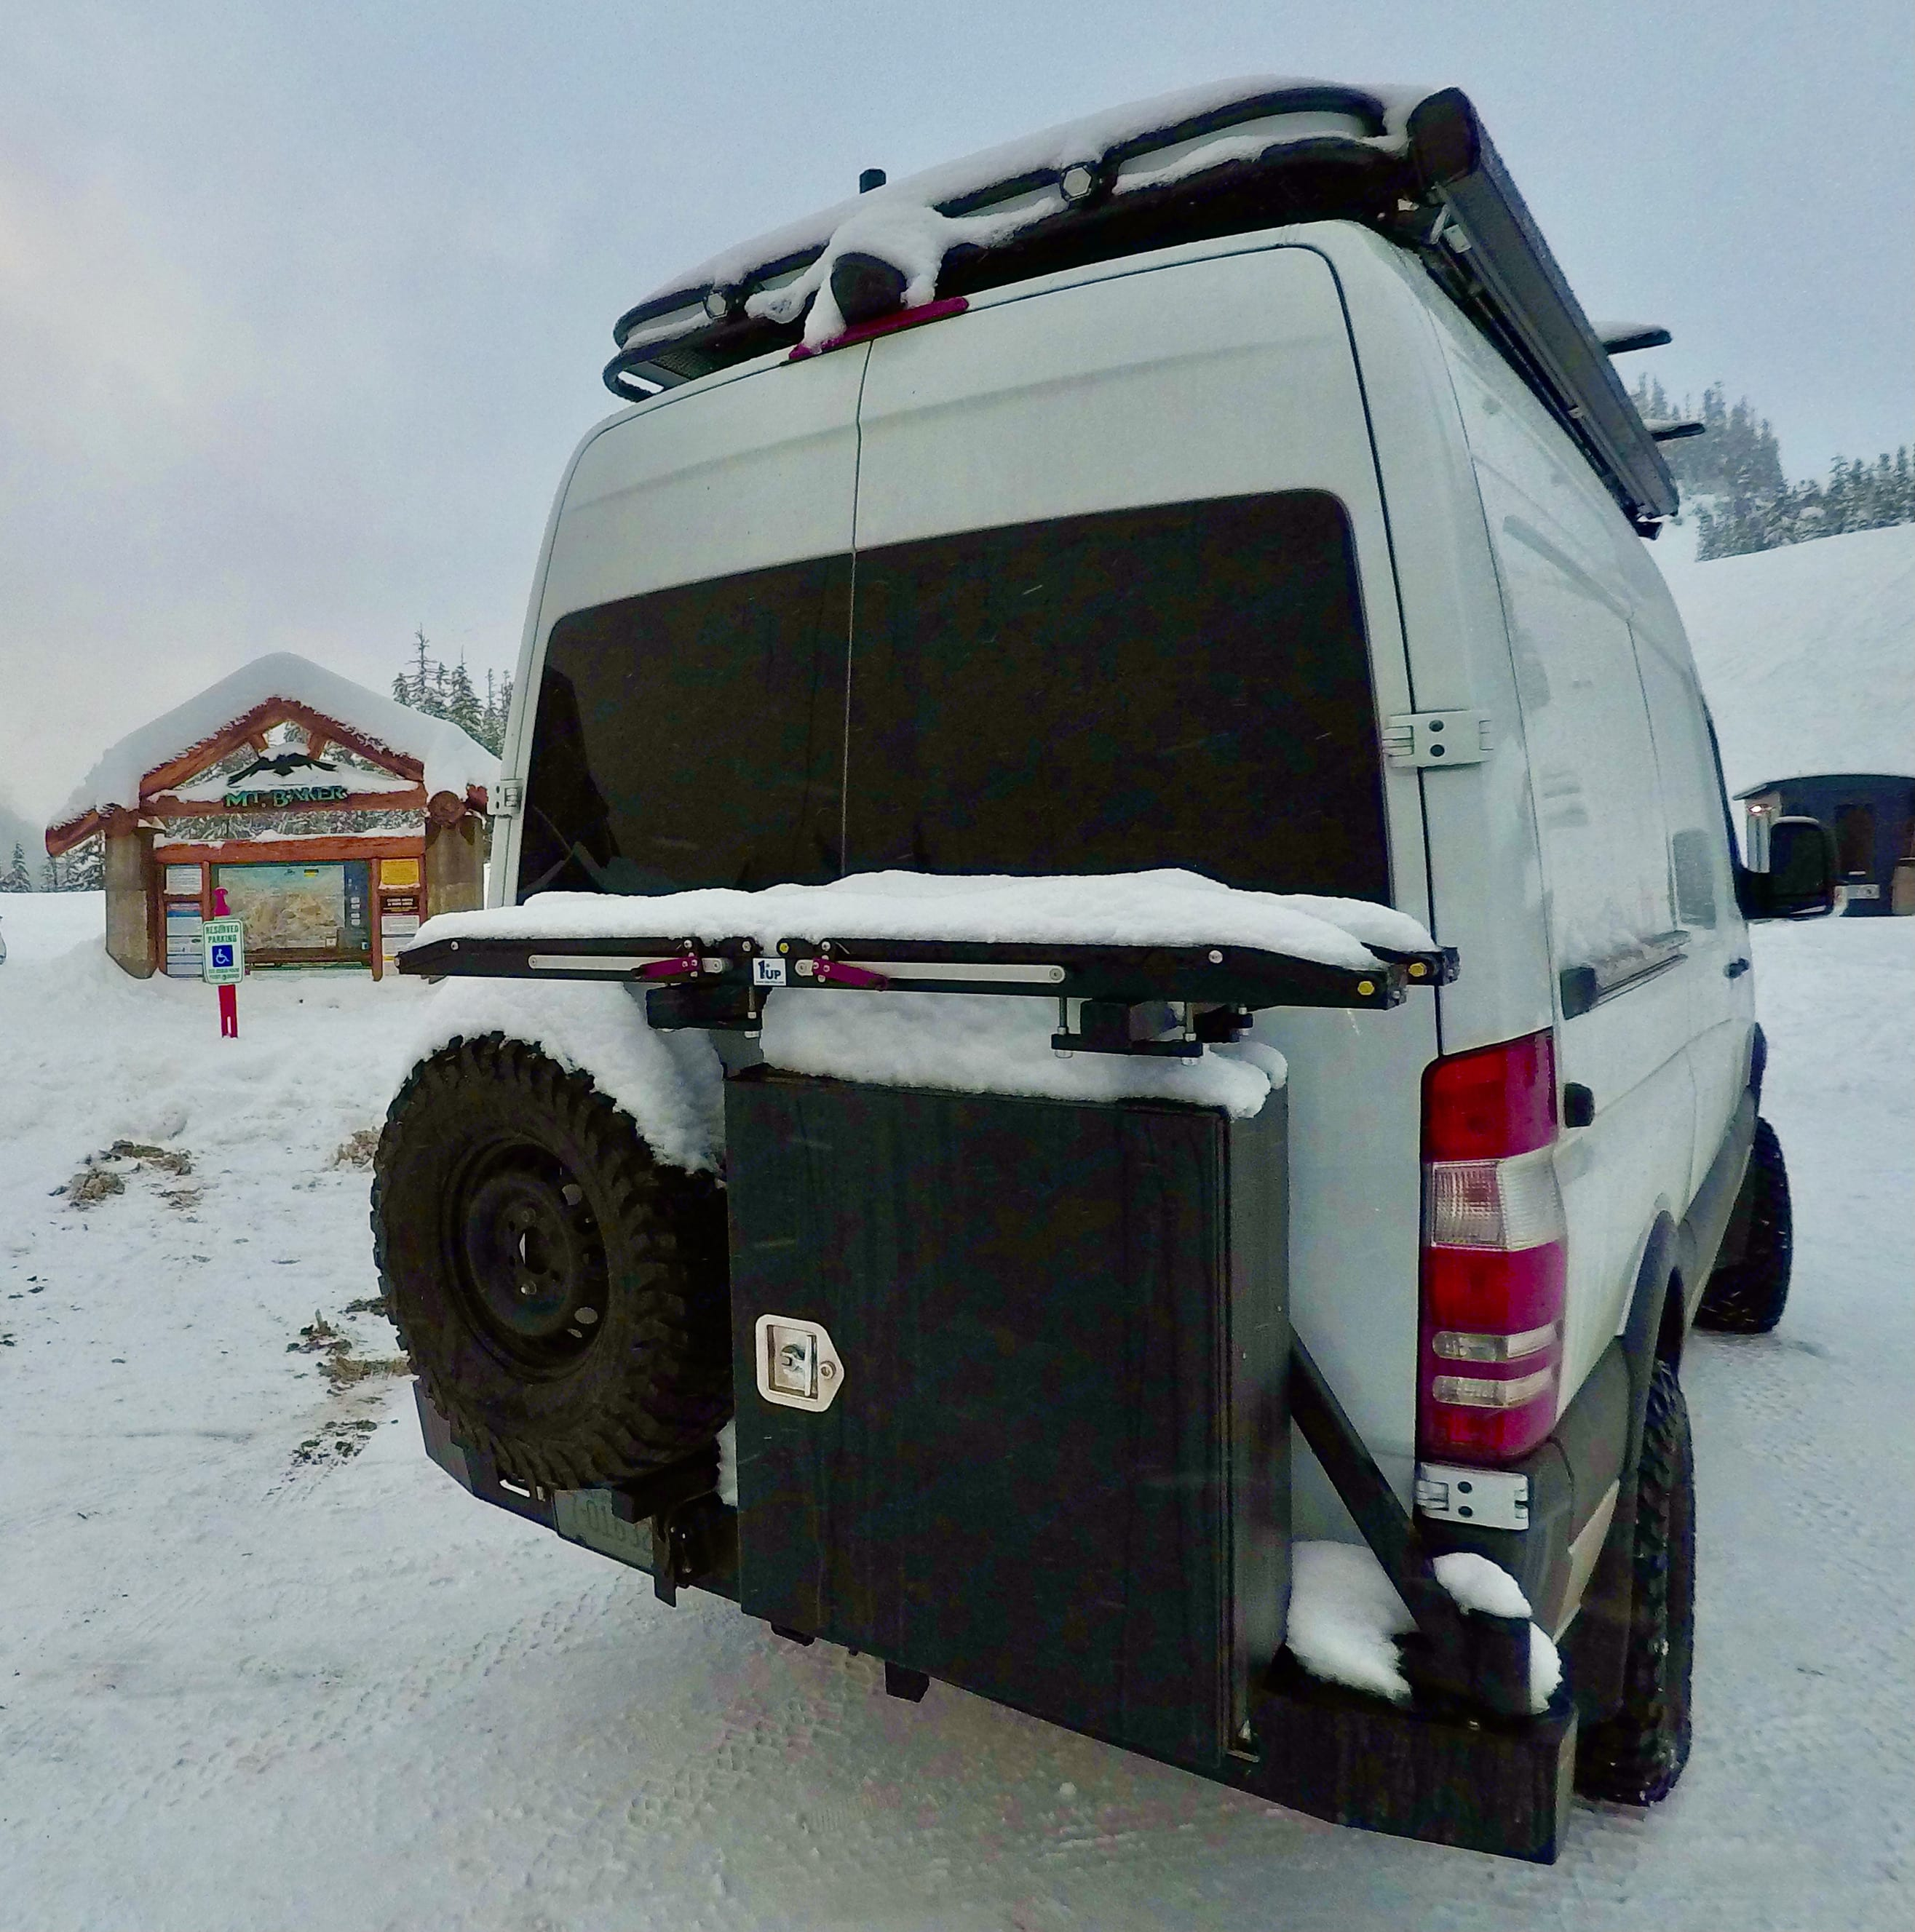 The Off Grid Reset is comfortable all 4 seasons with Radiant Floor Heating. Proven to keep your toes warm even on -10 degree ski days. . Mercedes-Benz Sprinter 2018